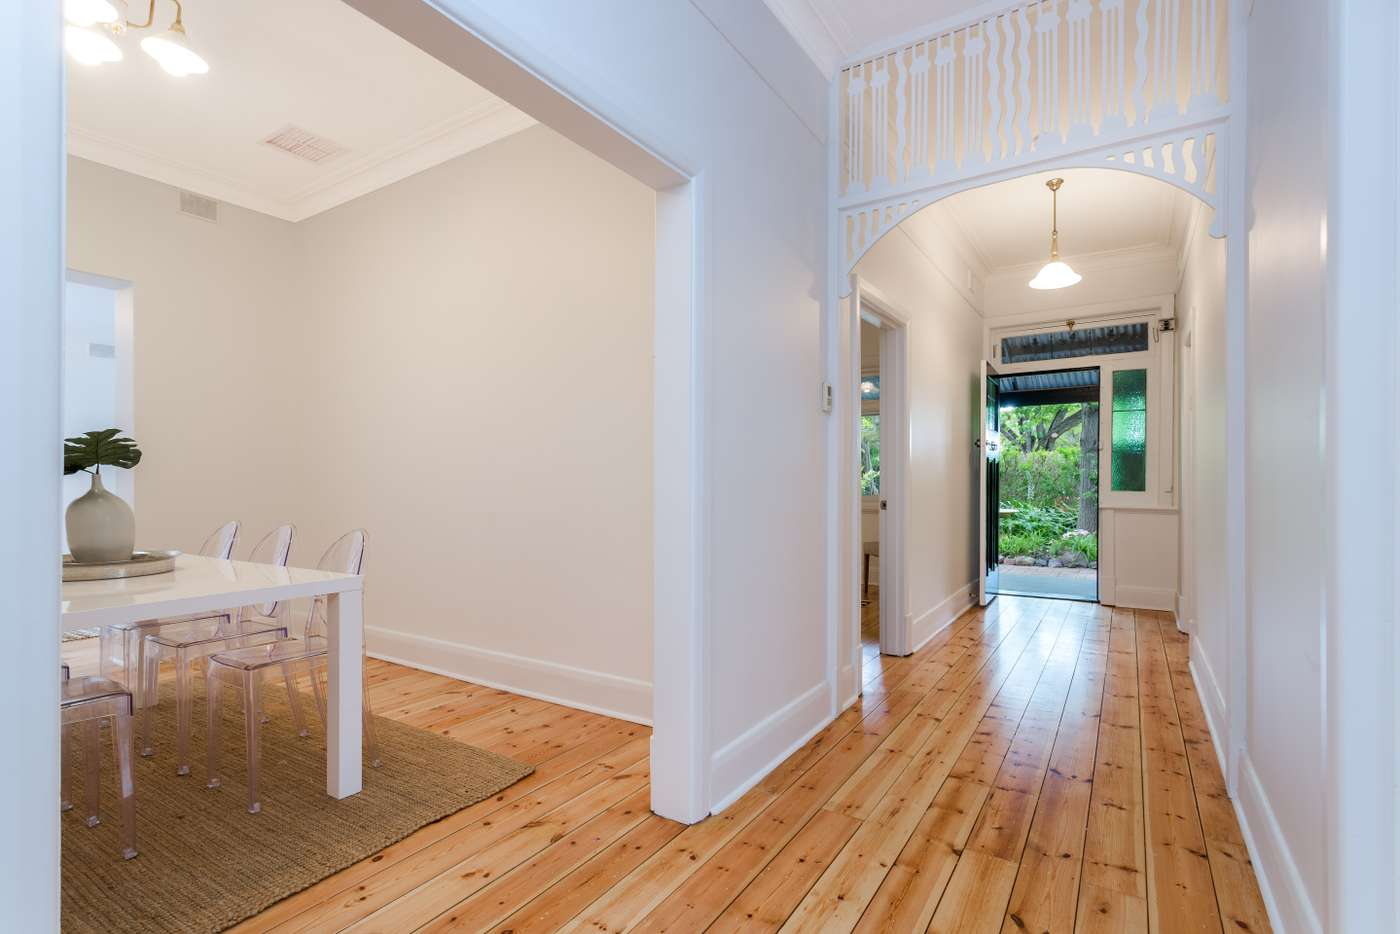 Sixth view of Homely house listing, 43 West Parkway, Colonel Light Gardens SA 5041